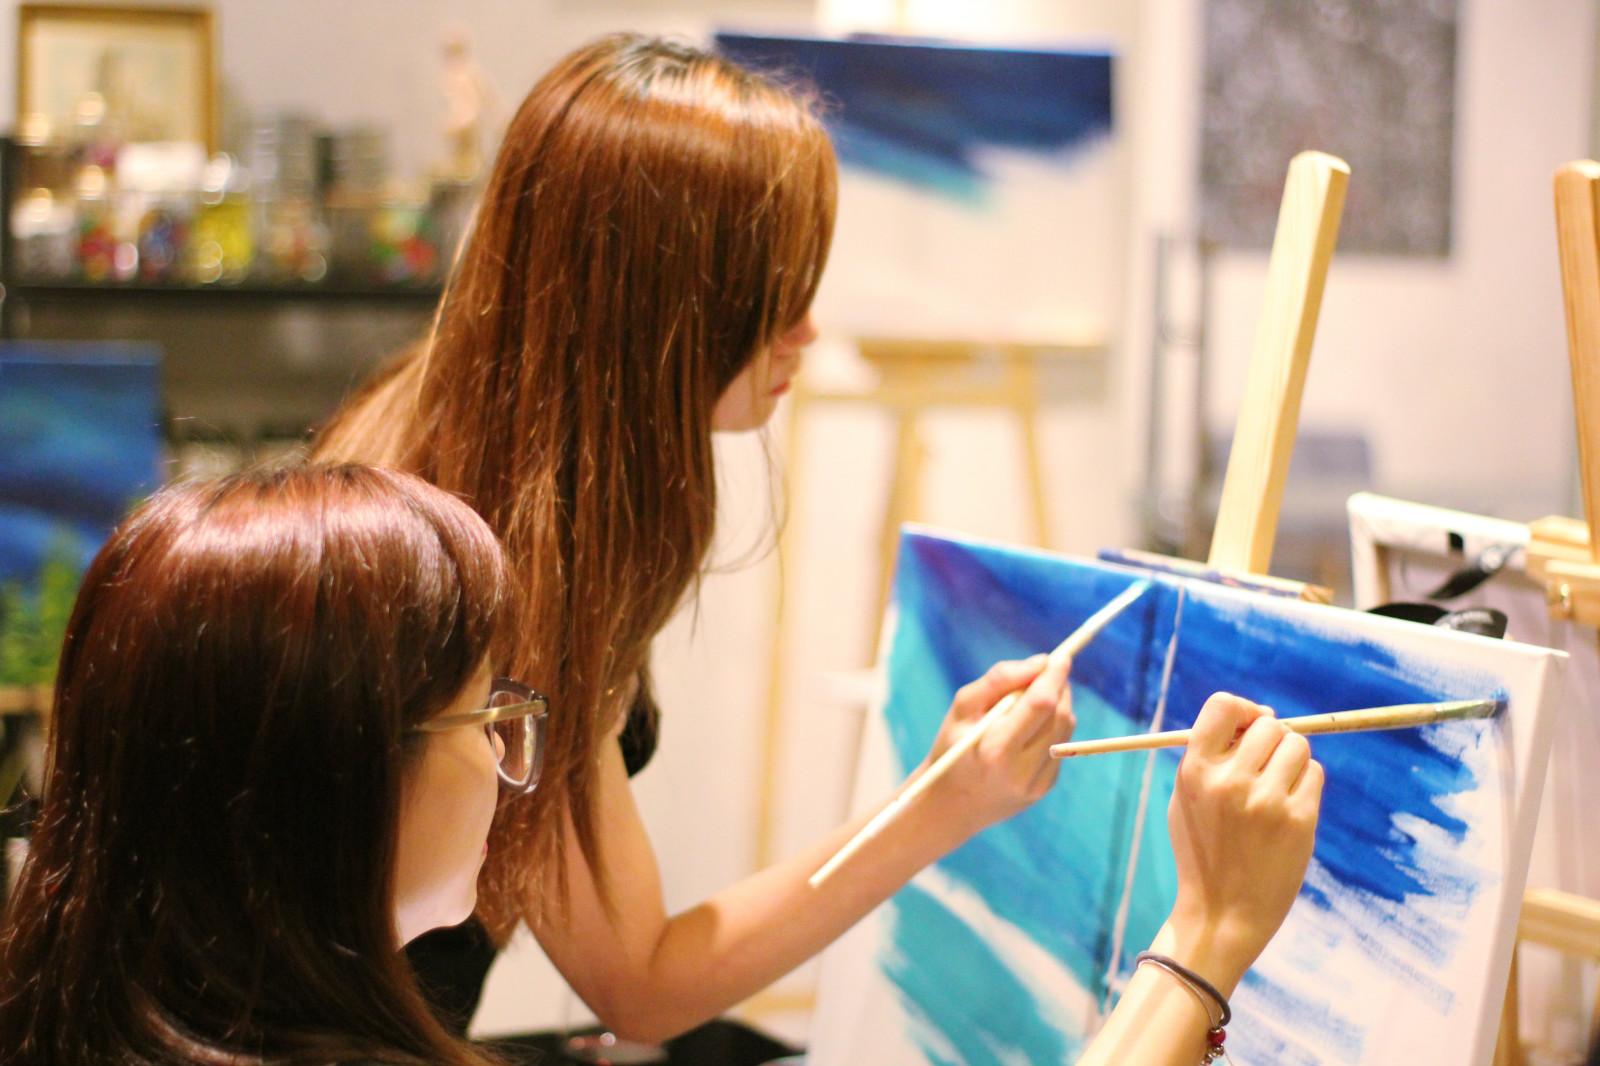 bff night out kl-sip and paint-artandbonding-paint night malaysia-kl